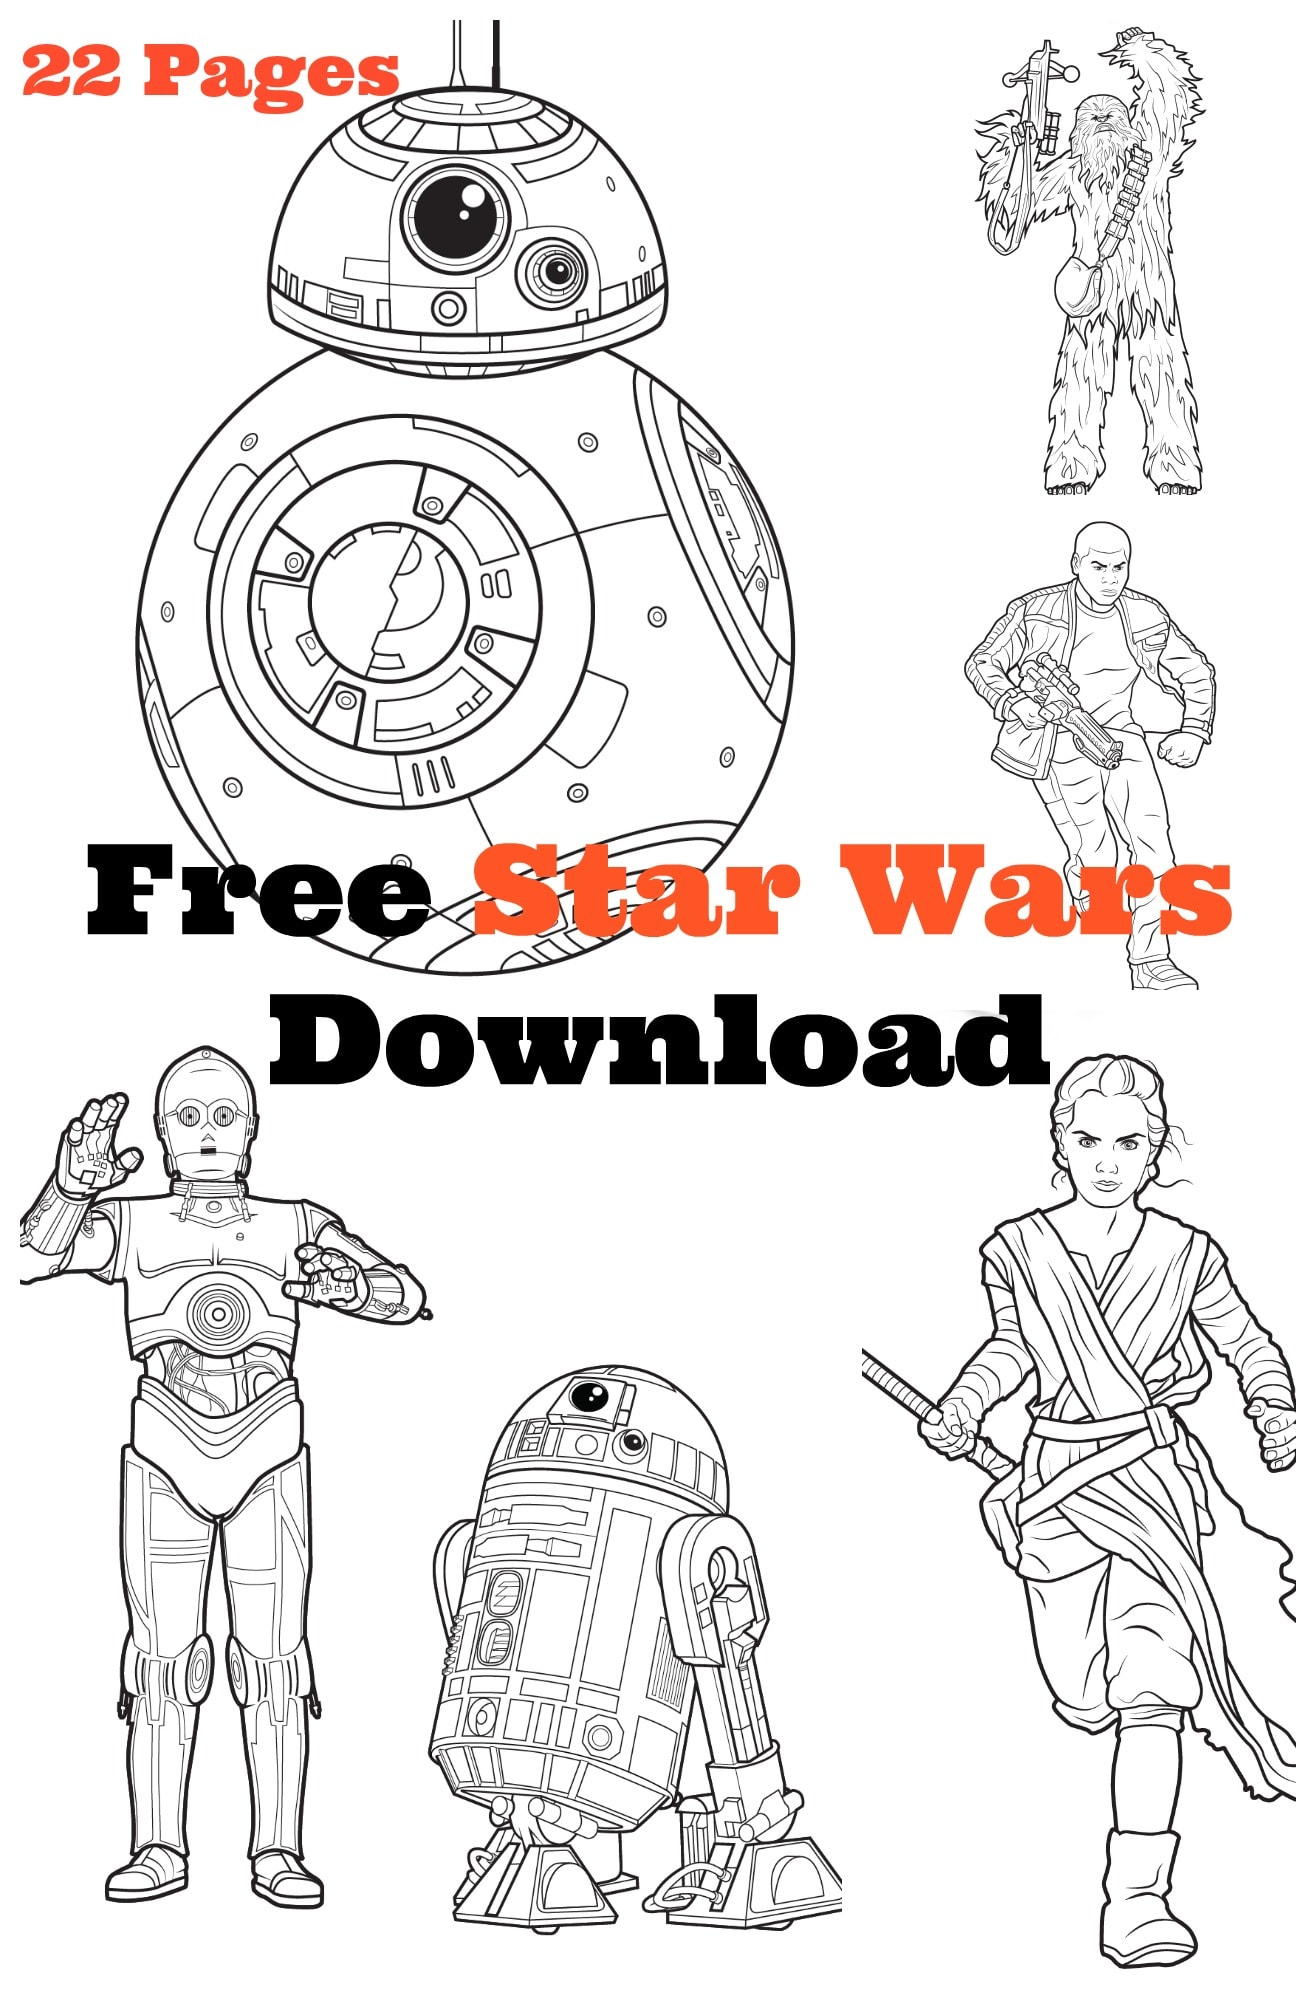 mega star wars free coloring activity kit download here